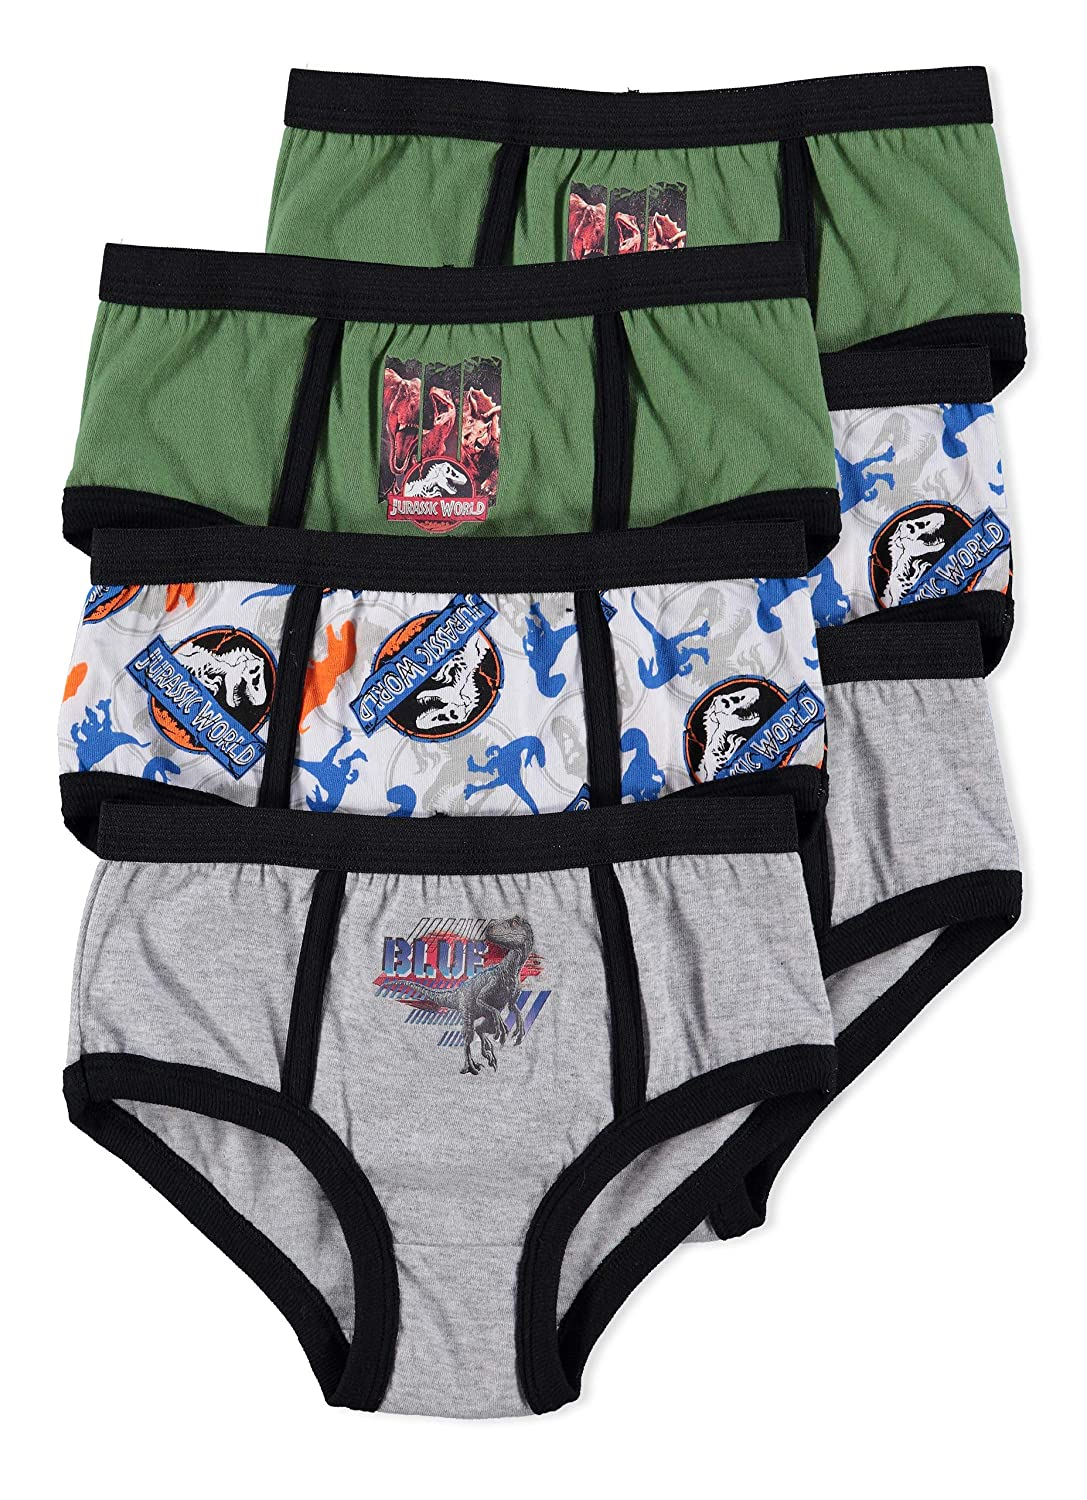 Jurassic World 2 Boys Underwear | Briefs 6-pack Jellifish Kids